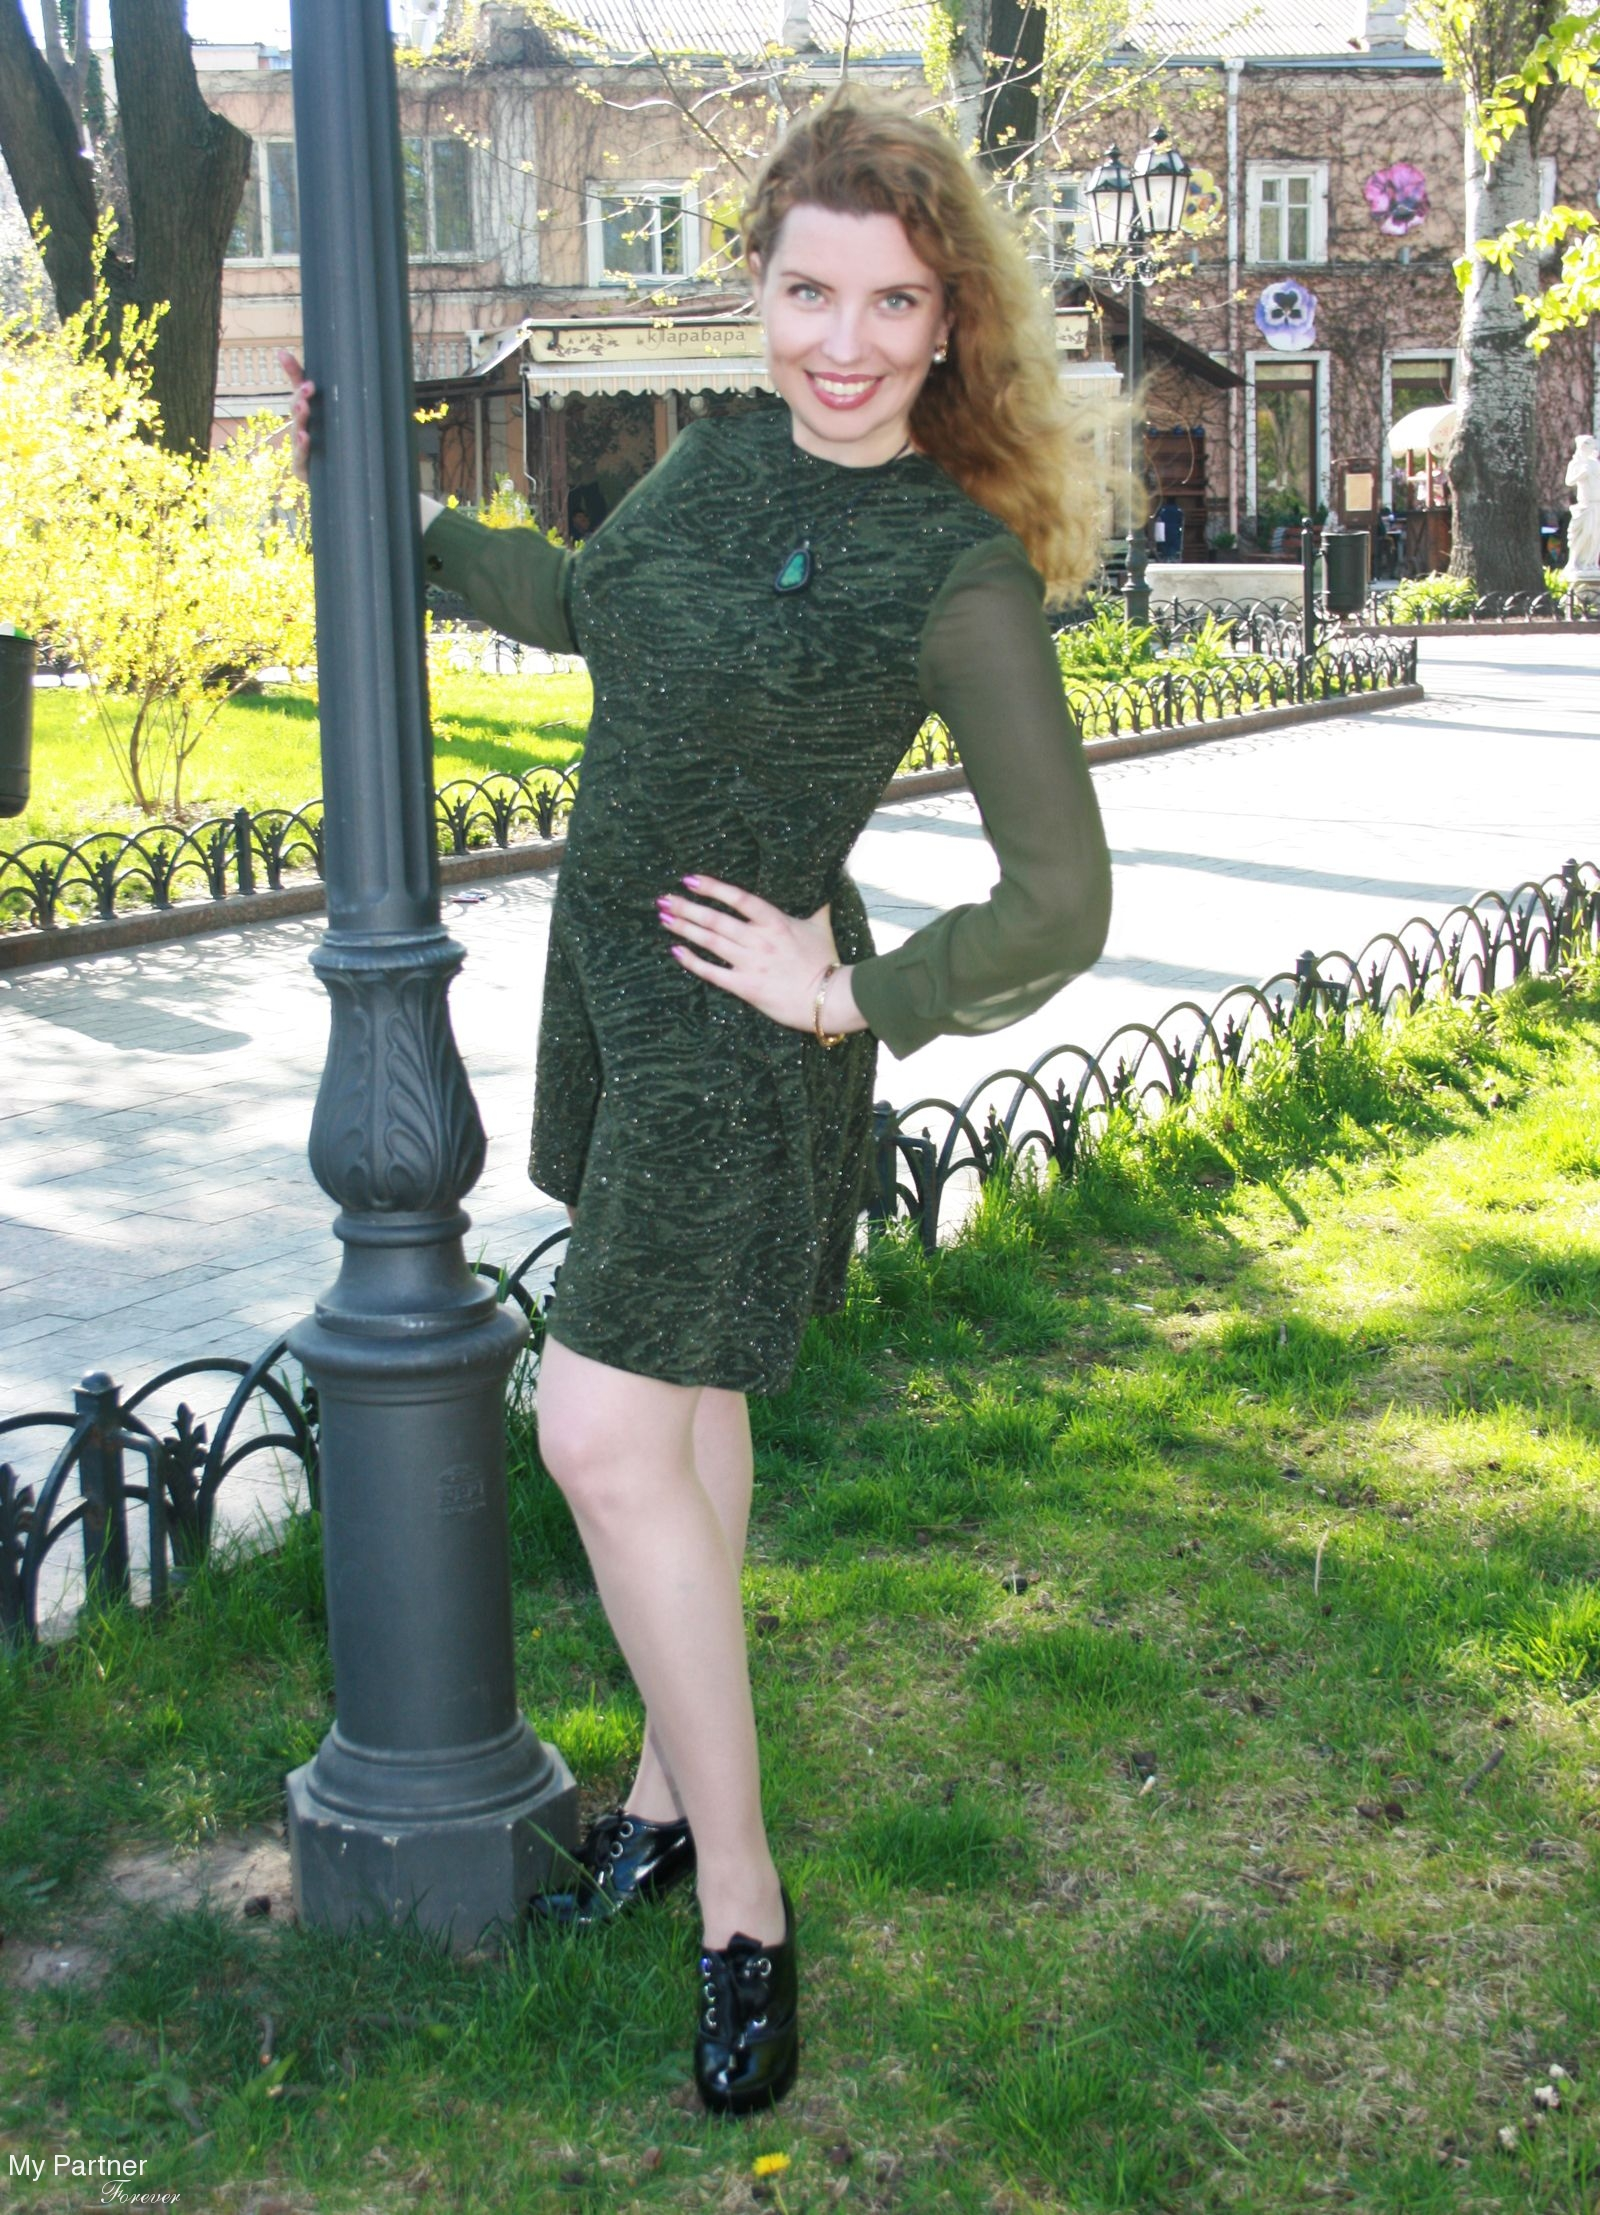 dating agencies odessa ukraine Odessa brides is an excellent book on the subject  again, he met a girl on a  dating website or agency, the majority of which are scams in.